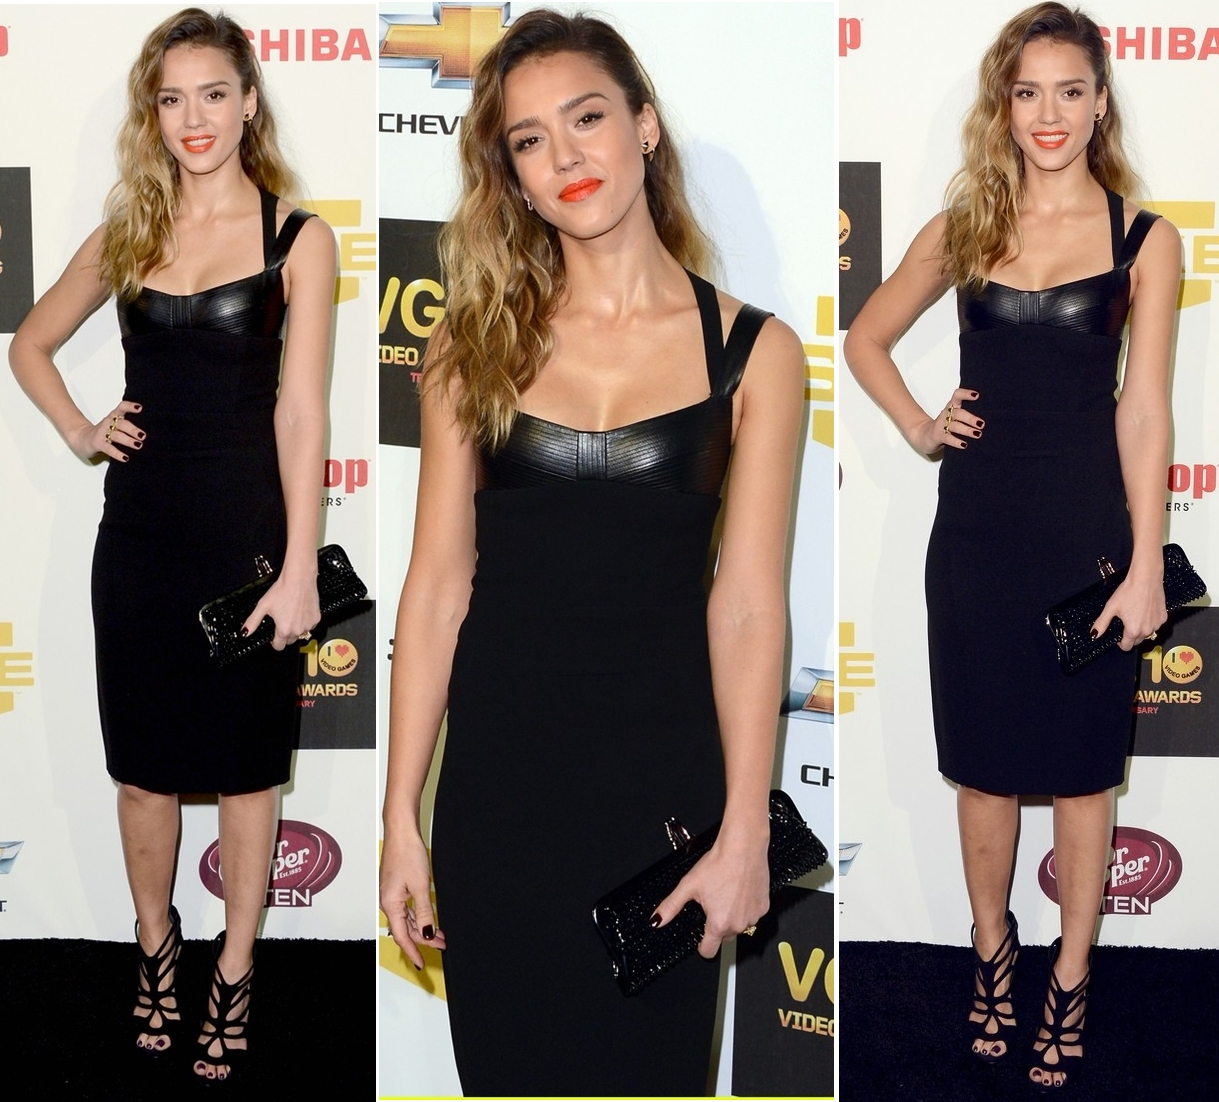 http://3.bp.blogspot.com/-EwQbgJO_yXo/UMMgPgiGEyI/AAAAAAAASO0/aiKob03wt1M/s1600/jessica-alba-spike-tv-video-game-awards-01.jpg